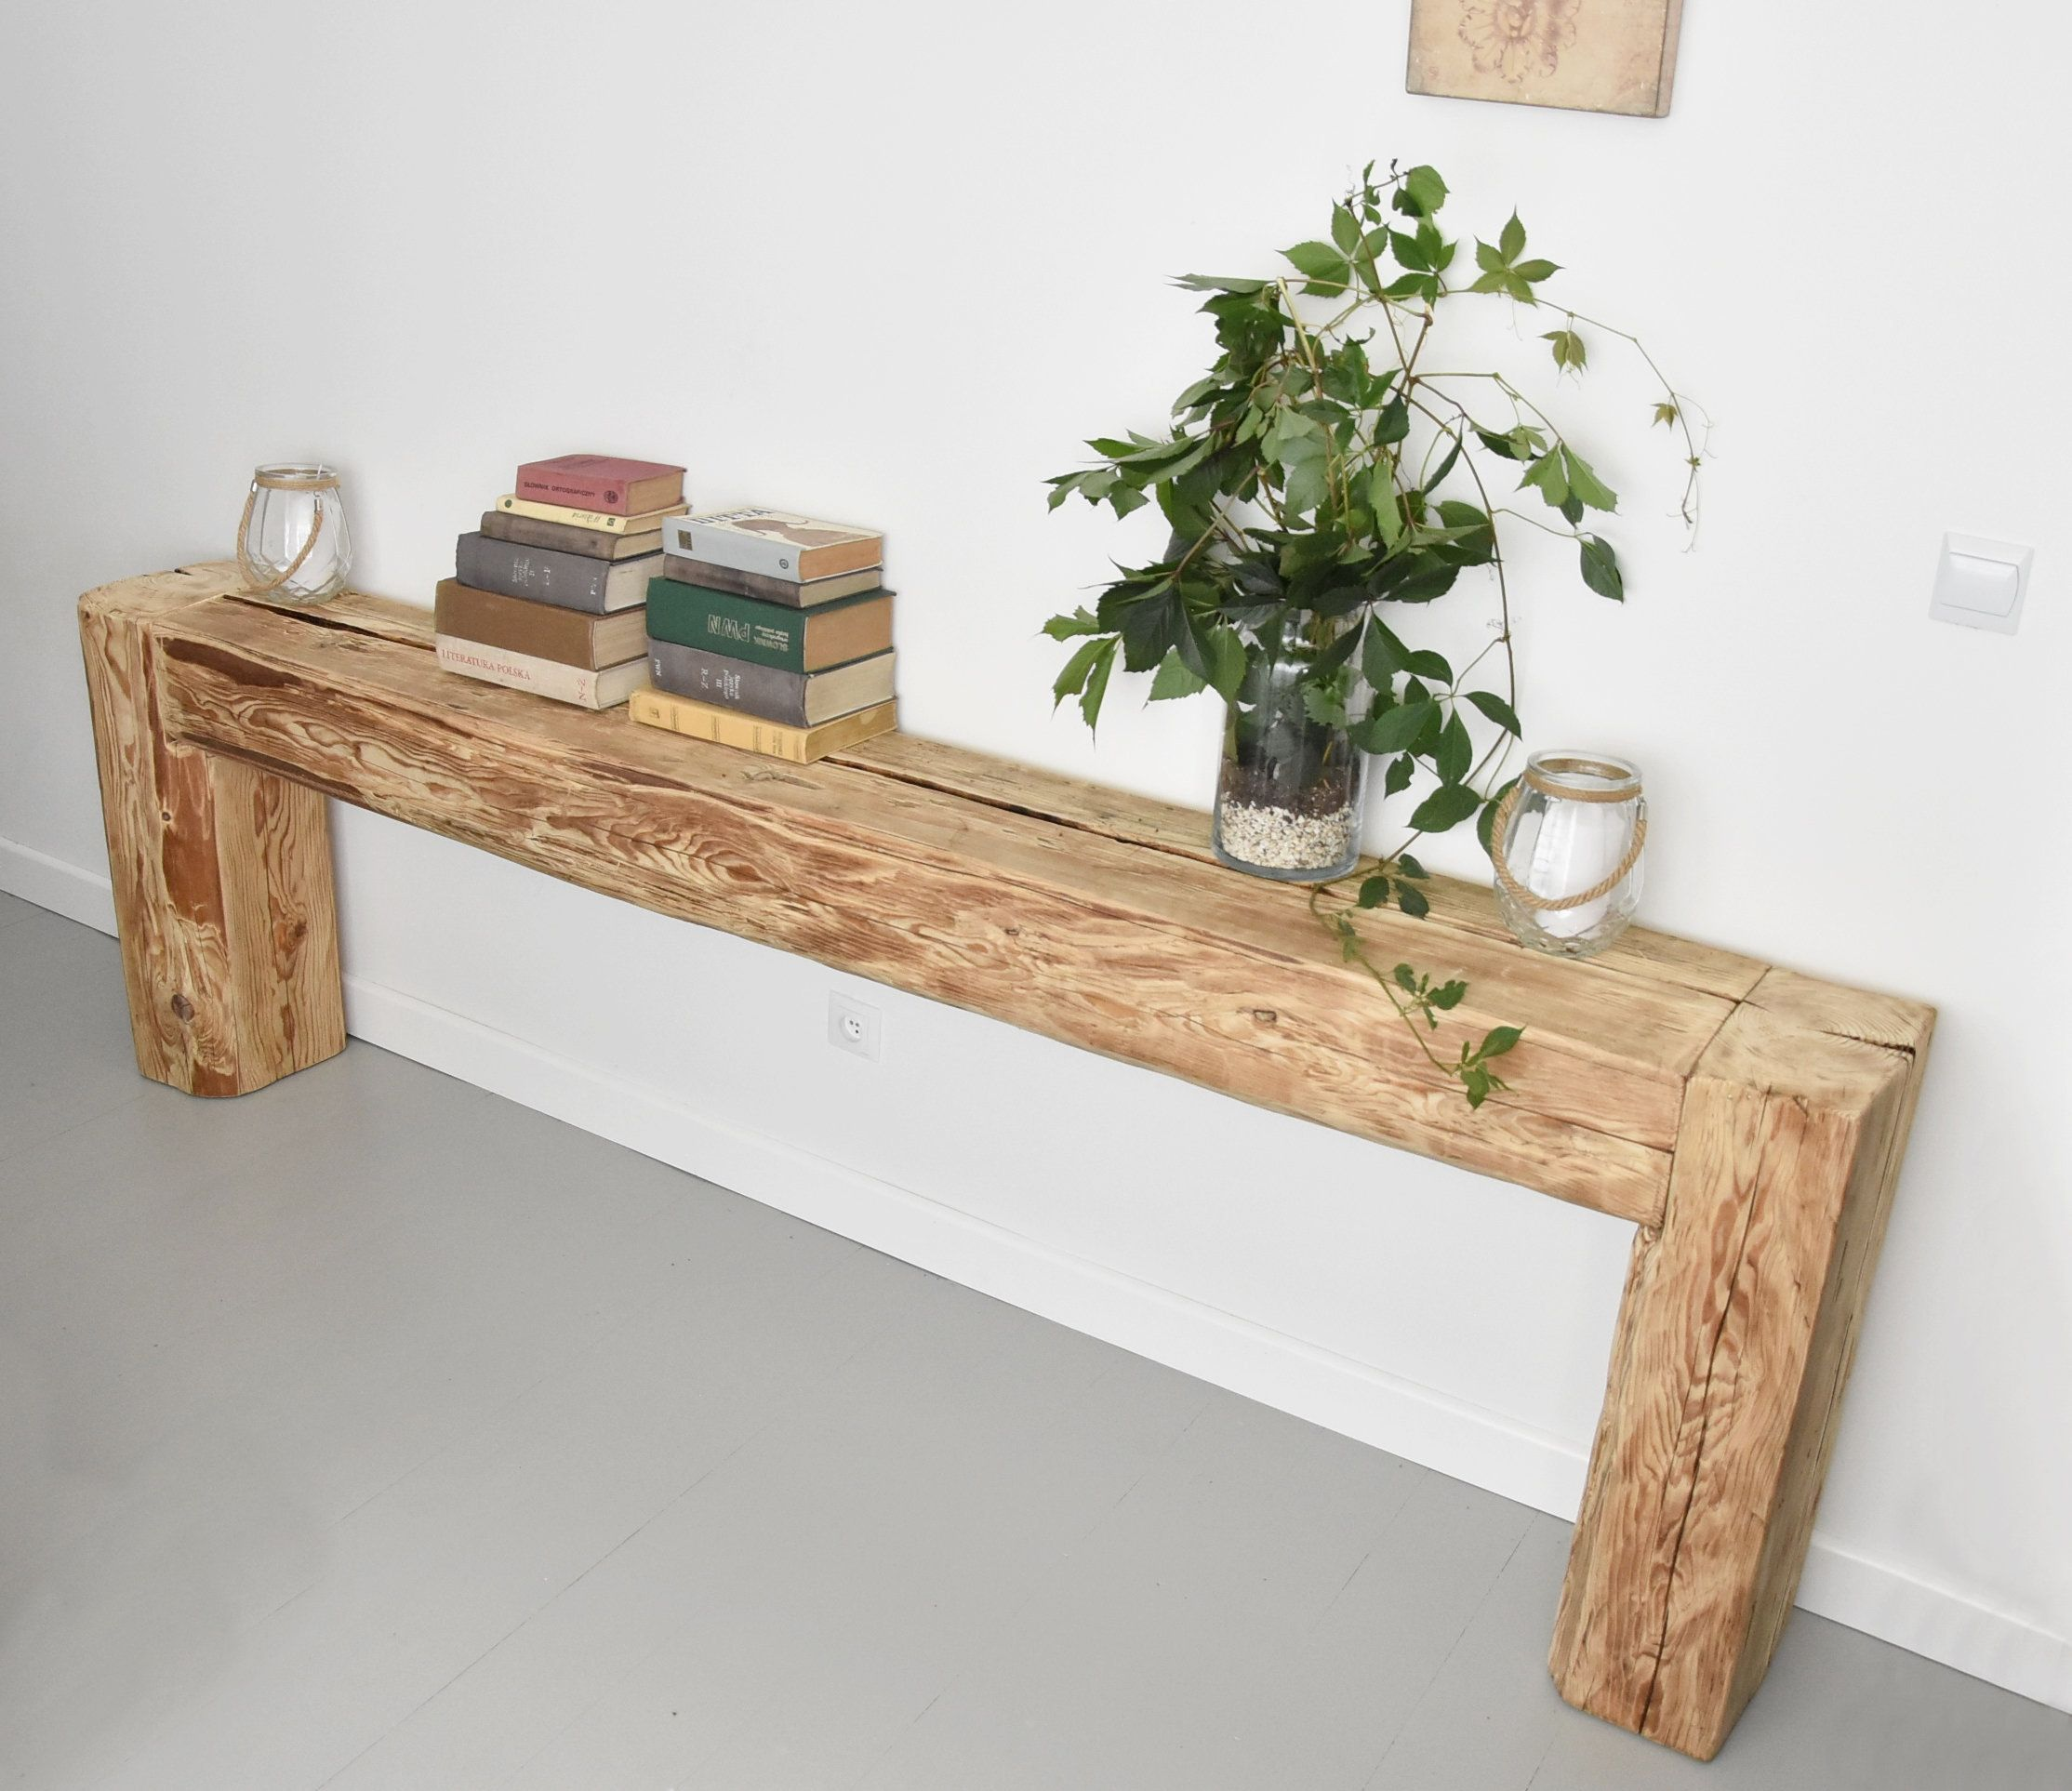 Reclaimed Beam Console Table Old Beams Rustic Country Style Designer Unique In 2020 Reclaimed Wood Console Table Reclaimed Beams Side Table Wood